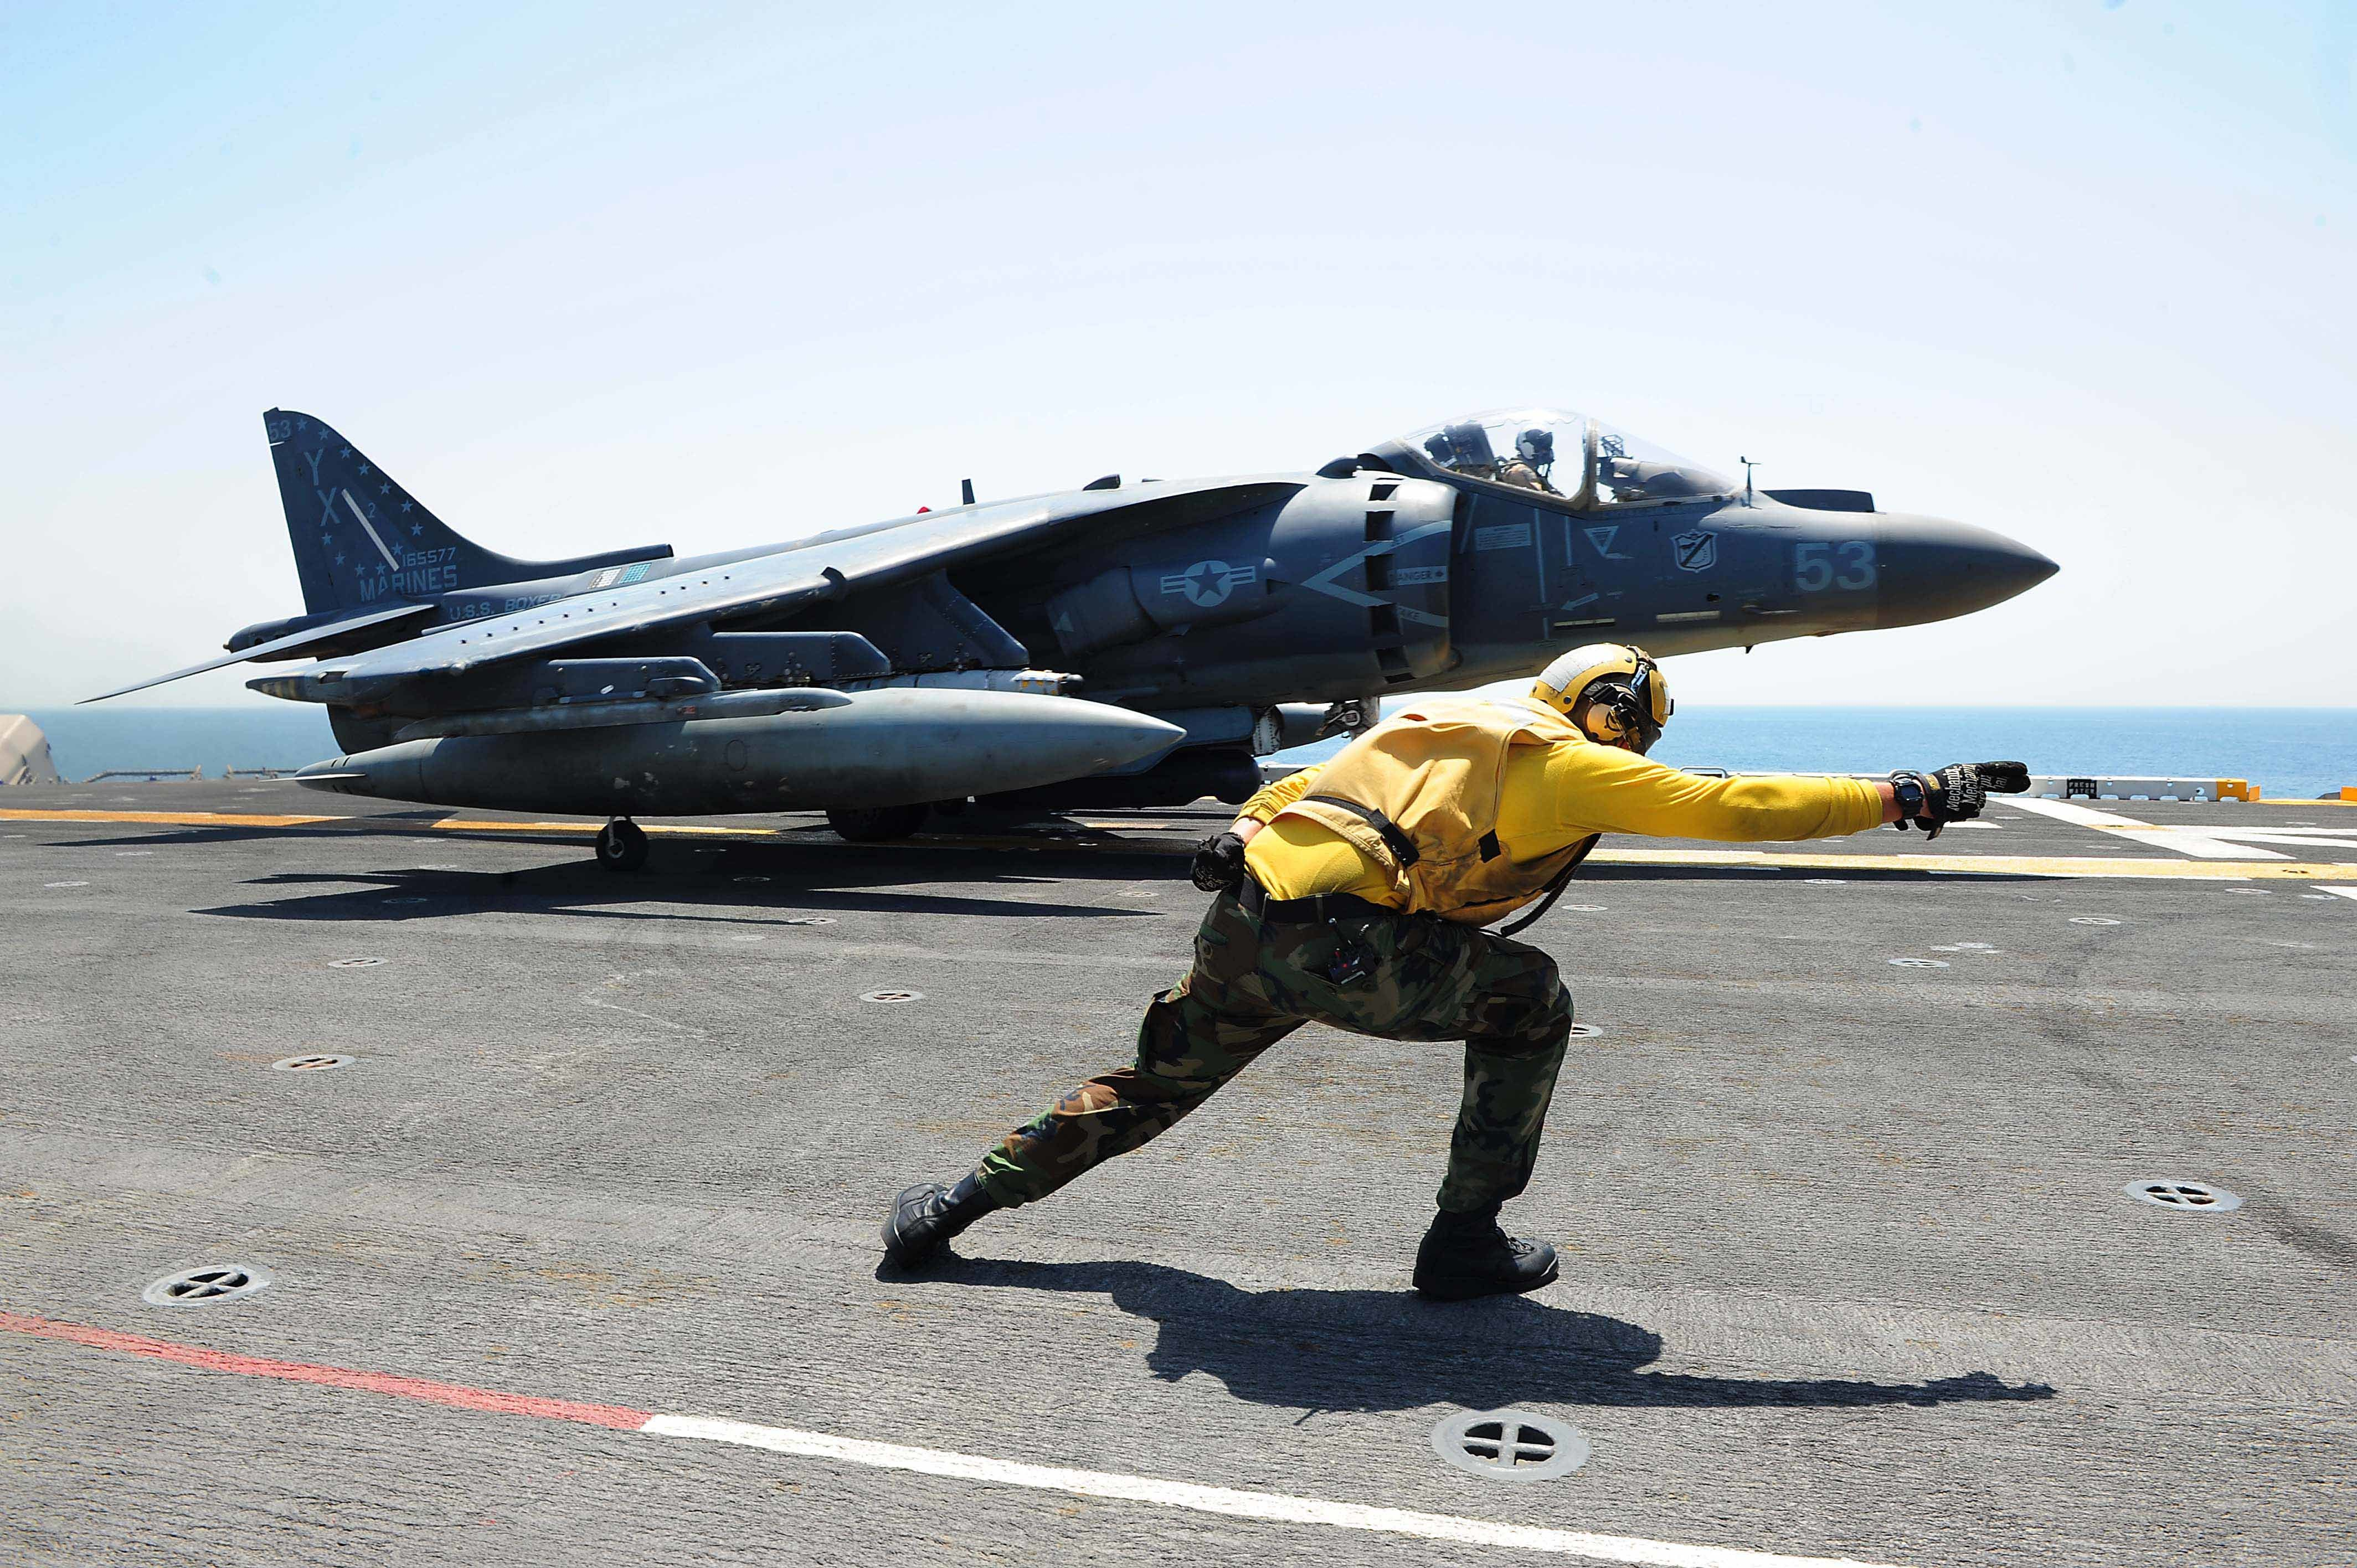 160711-N-VD165-166 ARABIAN GULF (July 11, 2016) Aviation Boatswain's Mate (Handling) 3rd Class Chase Coker launches an AV-8B Harrier II, attached to 13th Marine Expeditionary Unit (MEU), off the flight deck of amphibious assault ship USS Boxer (LHD 4). Boxer is the flagship for the Boxer Amphibious Ready Group and, with the embarked 13th MEU, is deployed in support of Operation Inherent Resolve, maritime security operations and theater cooperation efforts in the U.S. 5th Fleet area of operations. (U. S. Navy photo by Mass Communication Specialist 2nd Class Jose Jaen/Released)